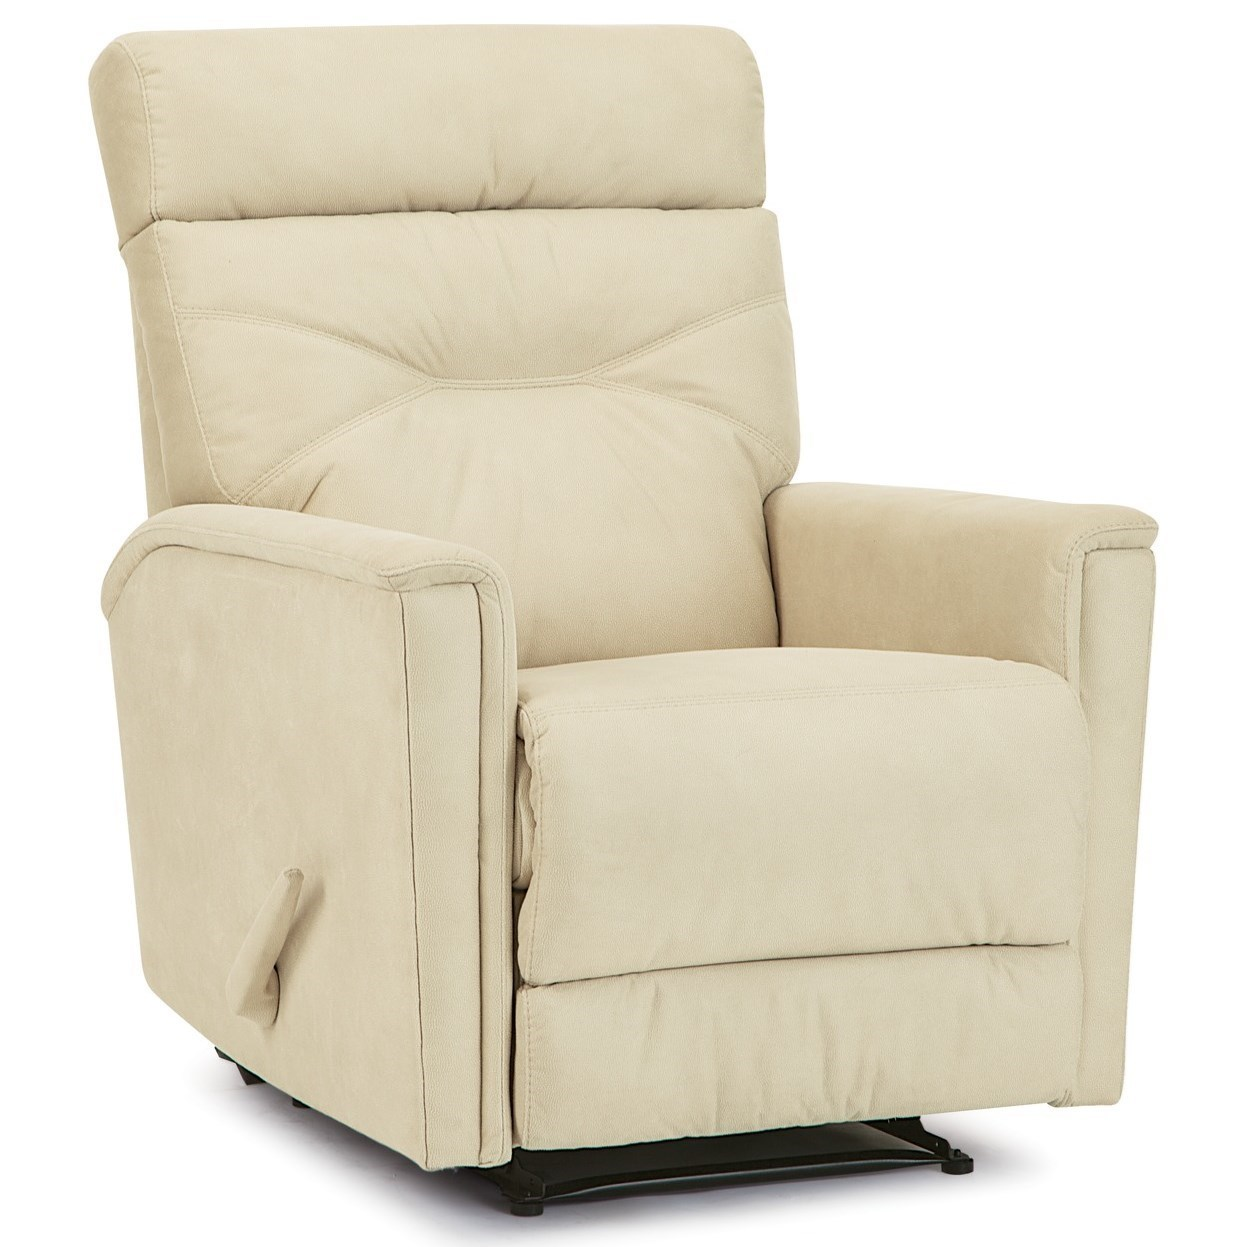 Denali Layflat Power Recliner by Palliser at SuperStore